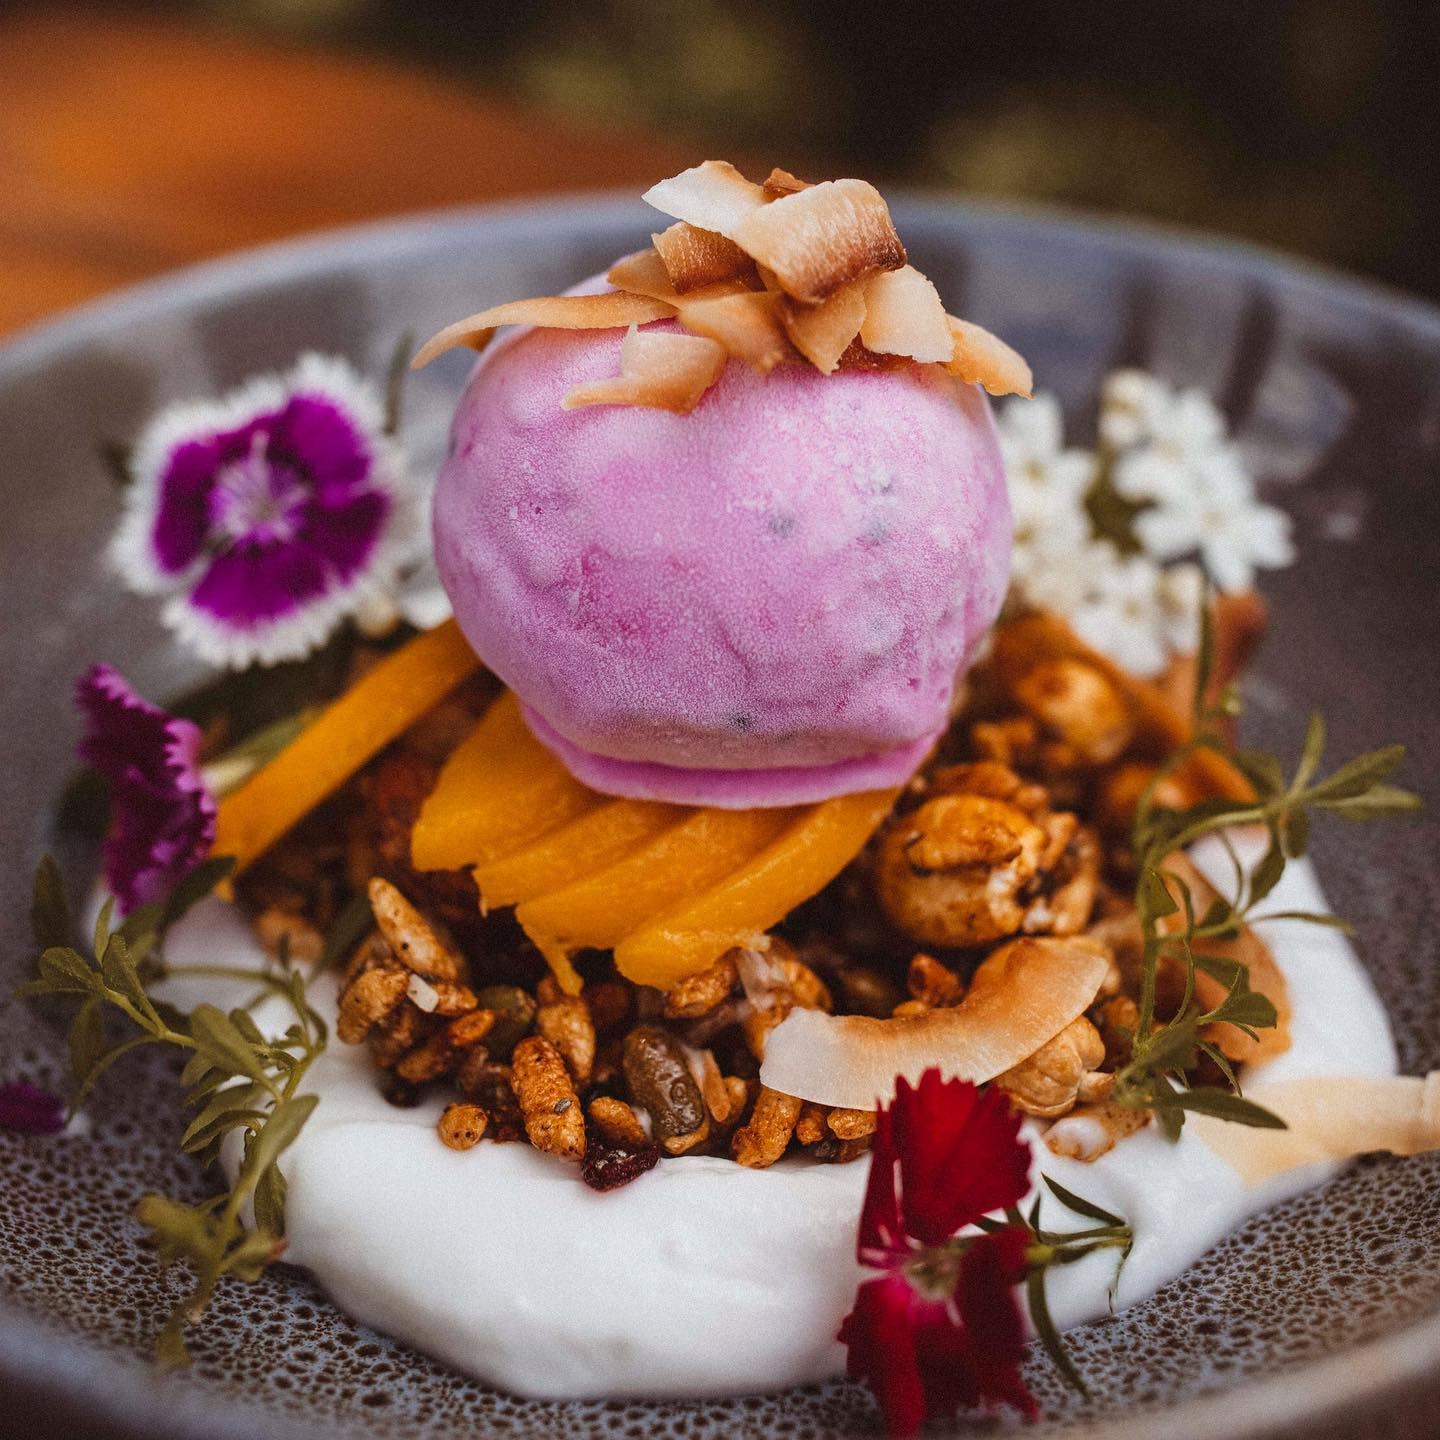 A plate with yogurt and musli topped with sorbet